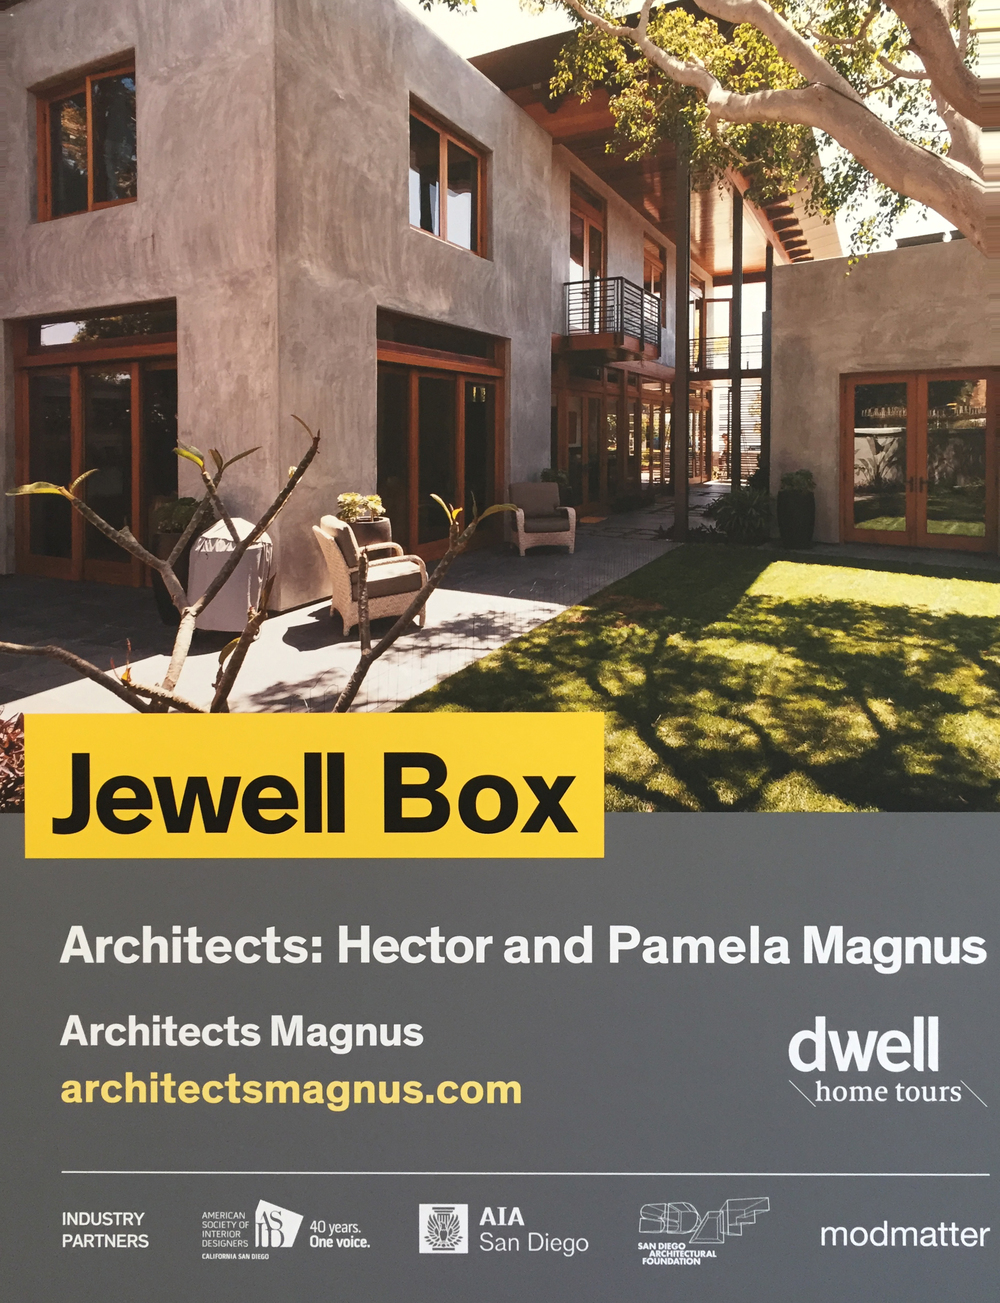 DwellHomeTours2016-JewellBox